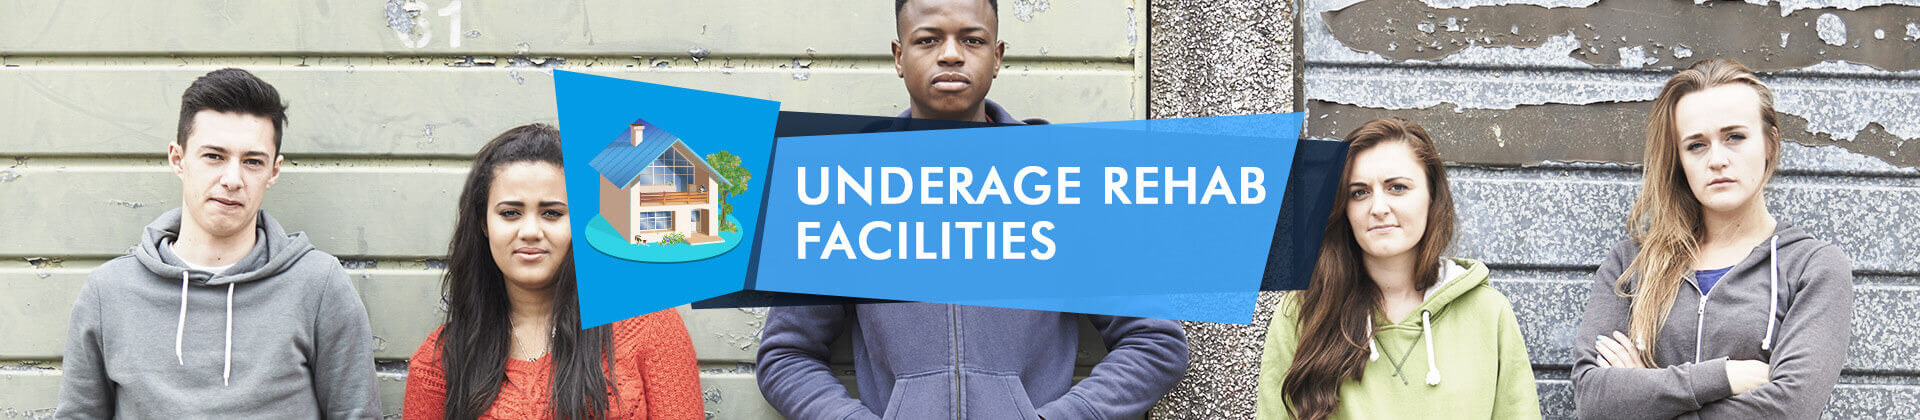 Underage rehab facilities